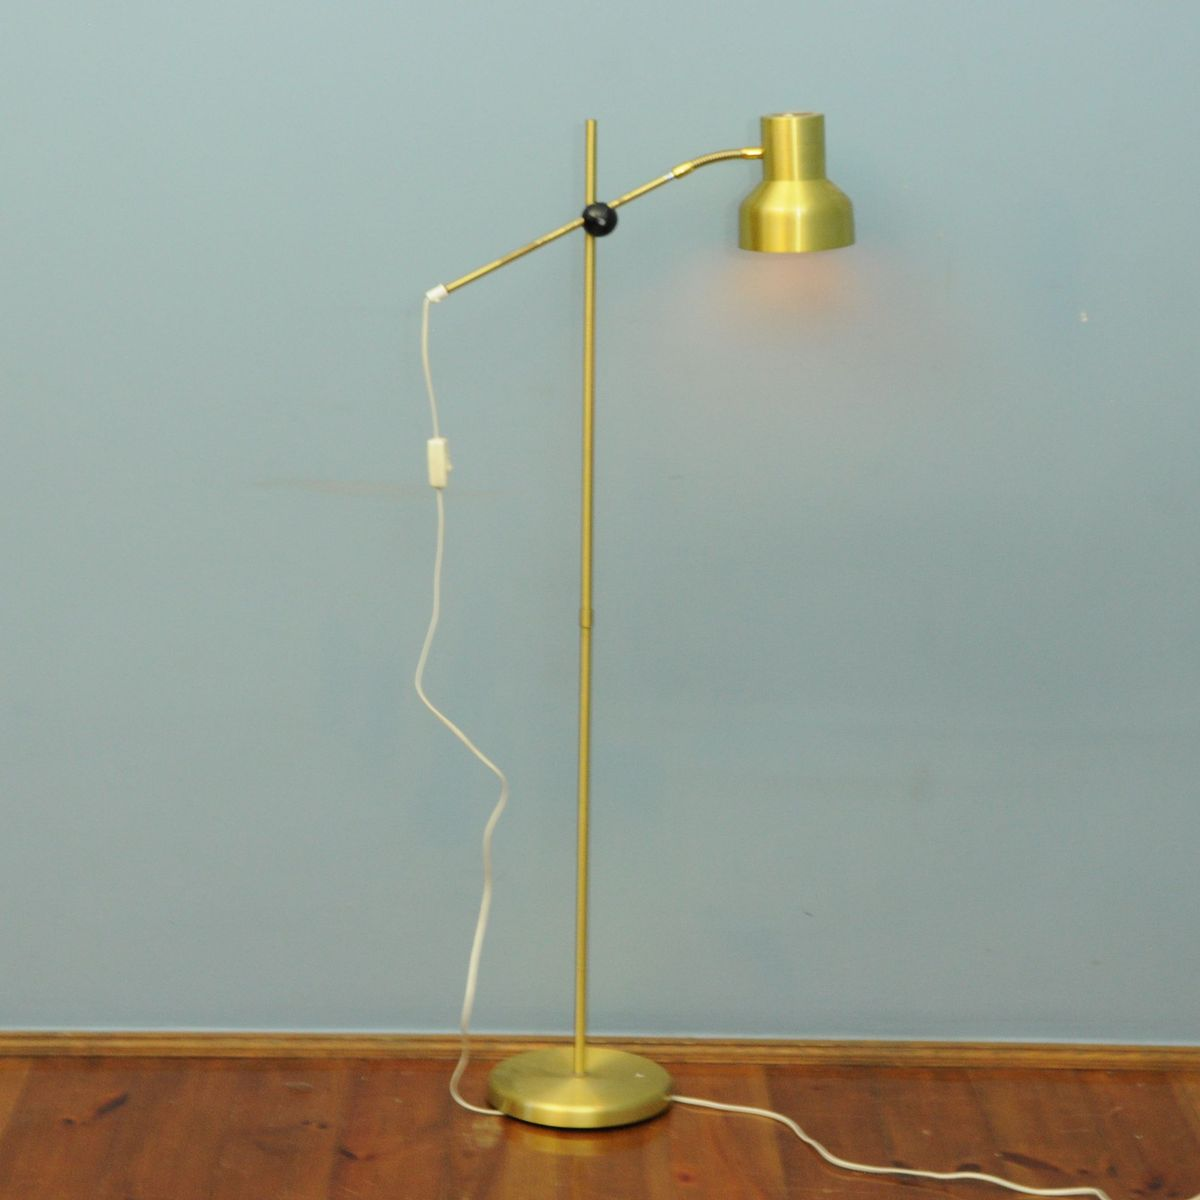 Vintage Floor Lamp from Belid, 1960s for sale at Pamono